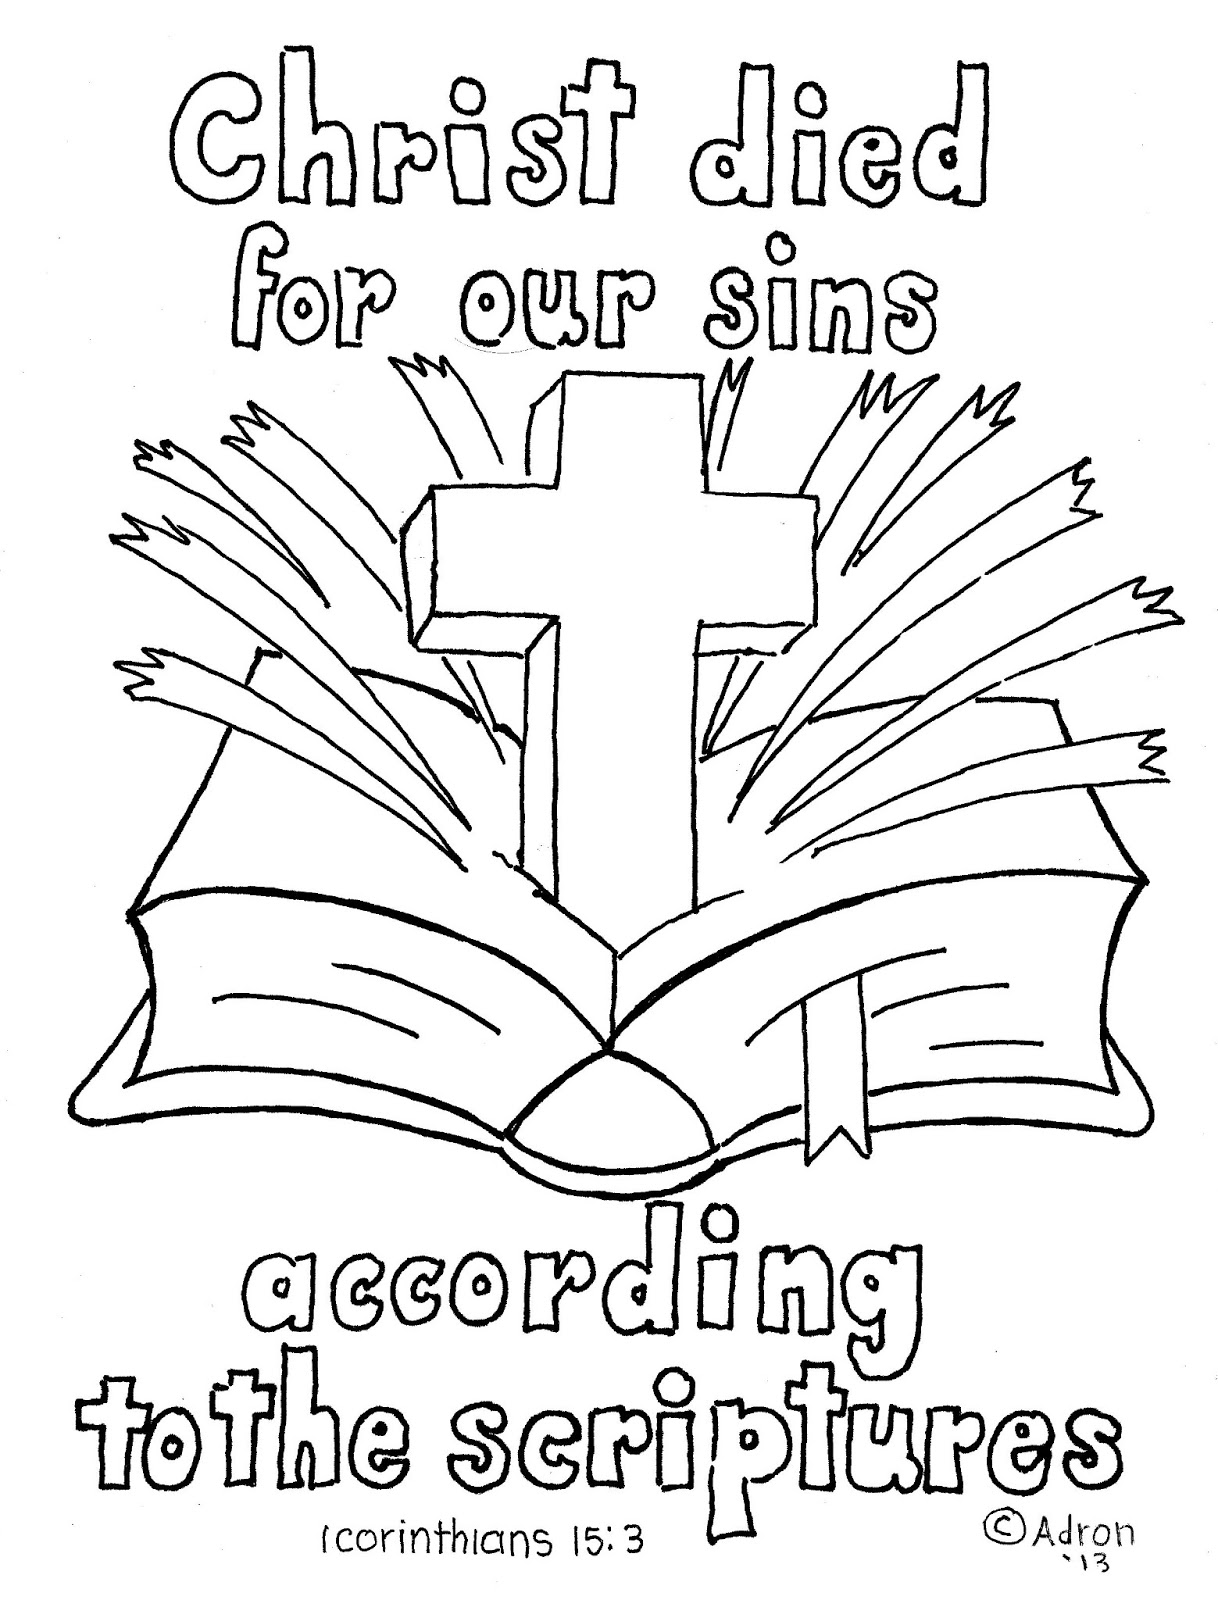 Coloring Pages for Kids by Mr. Adron: 1 Corinthians 15:3